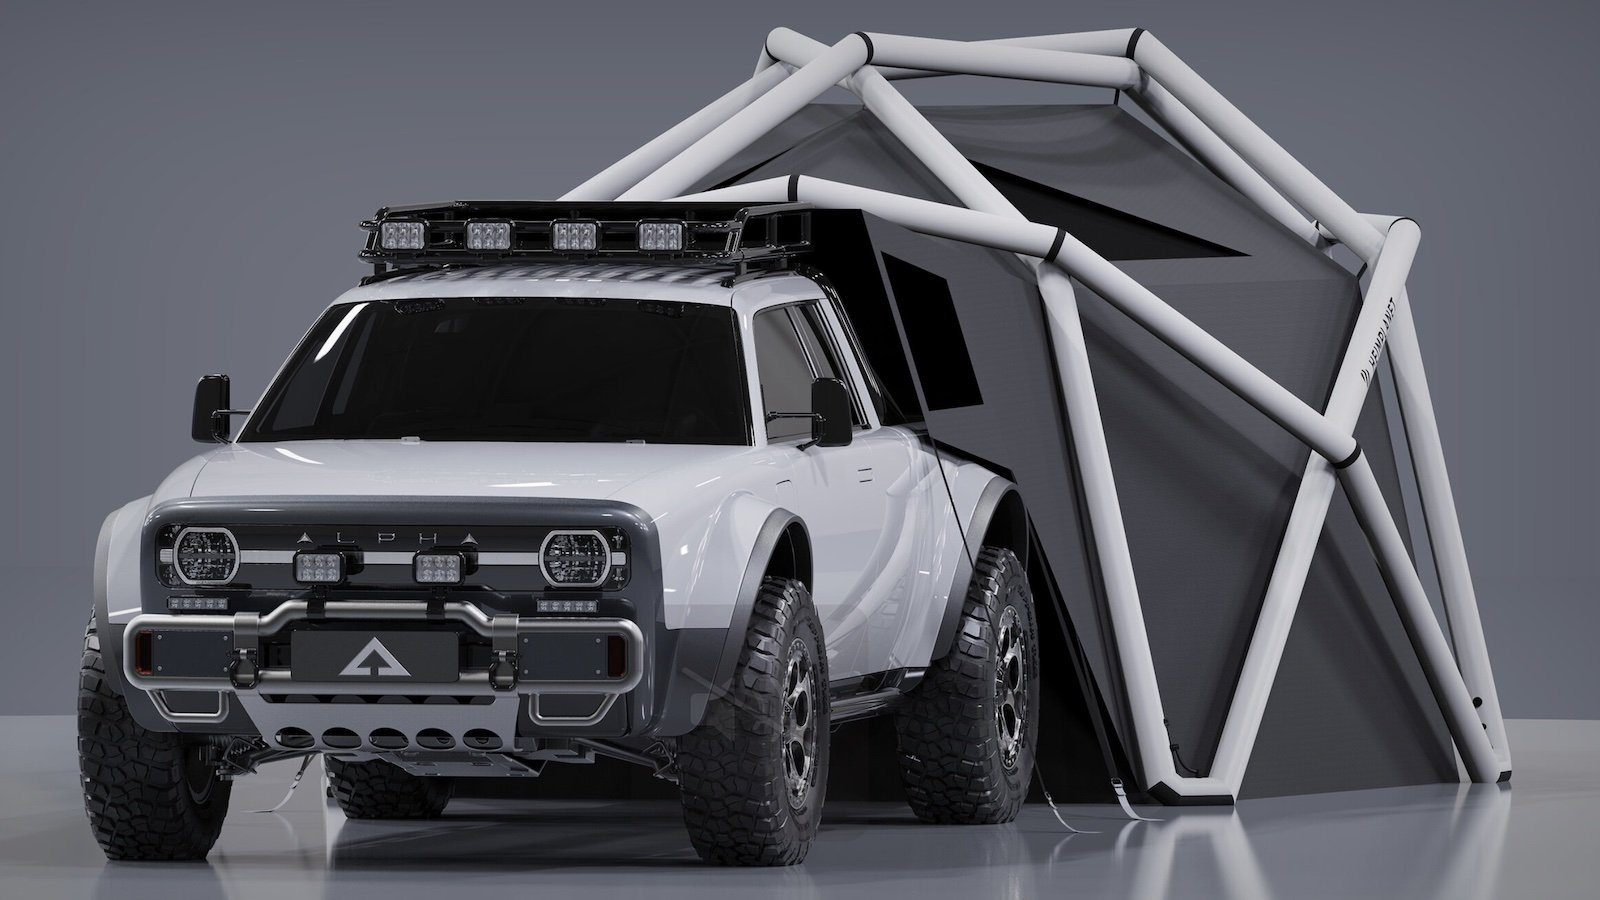 AMC X HEIMPLANET Collaboration WOLF+ TRUCK and CLOUDBREAK TENT lets you camp anywhere